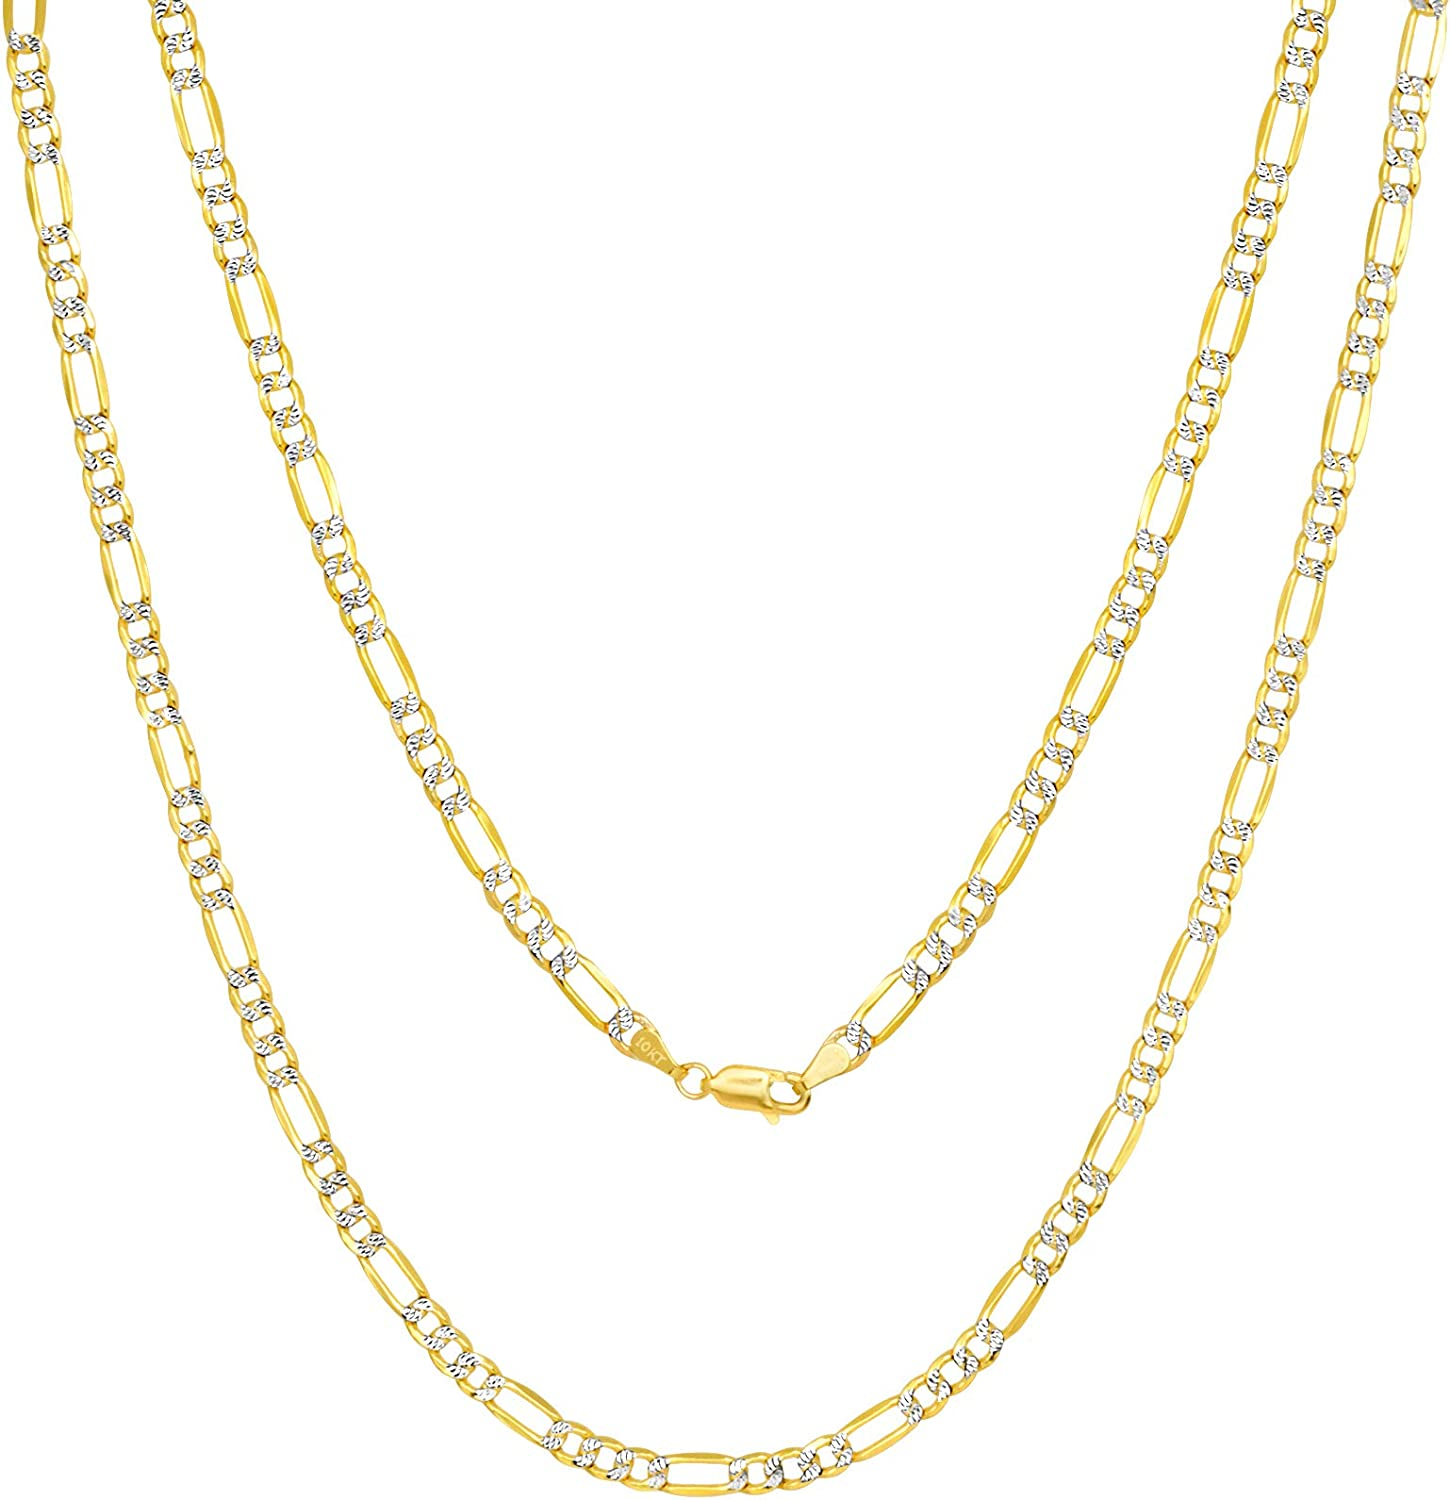 Nuragold 10k Yellow Gold Solid 5mm Figaro Chain Link Diamond Cut Pave Two Tone Pendant Necklace, Mens Womens Lobster Lock 18